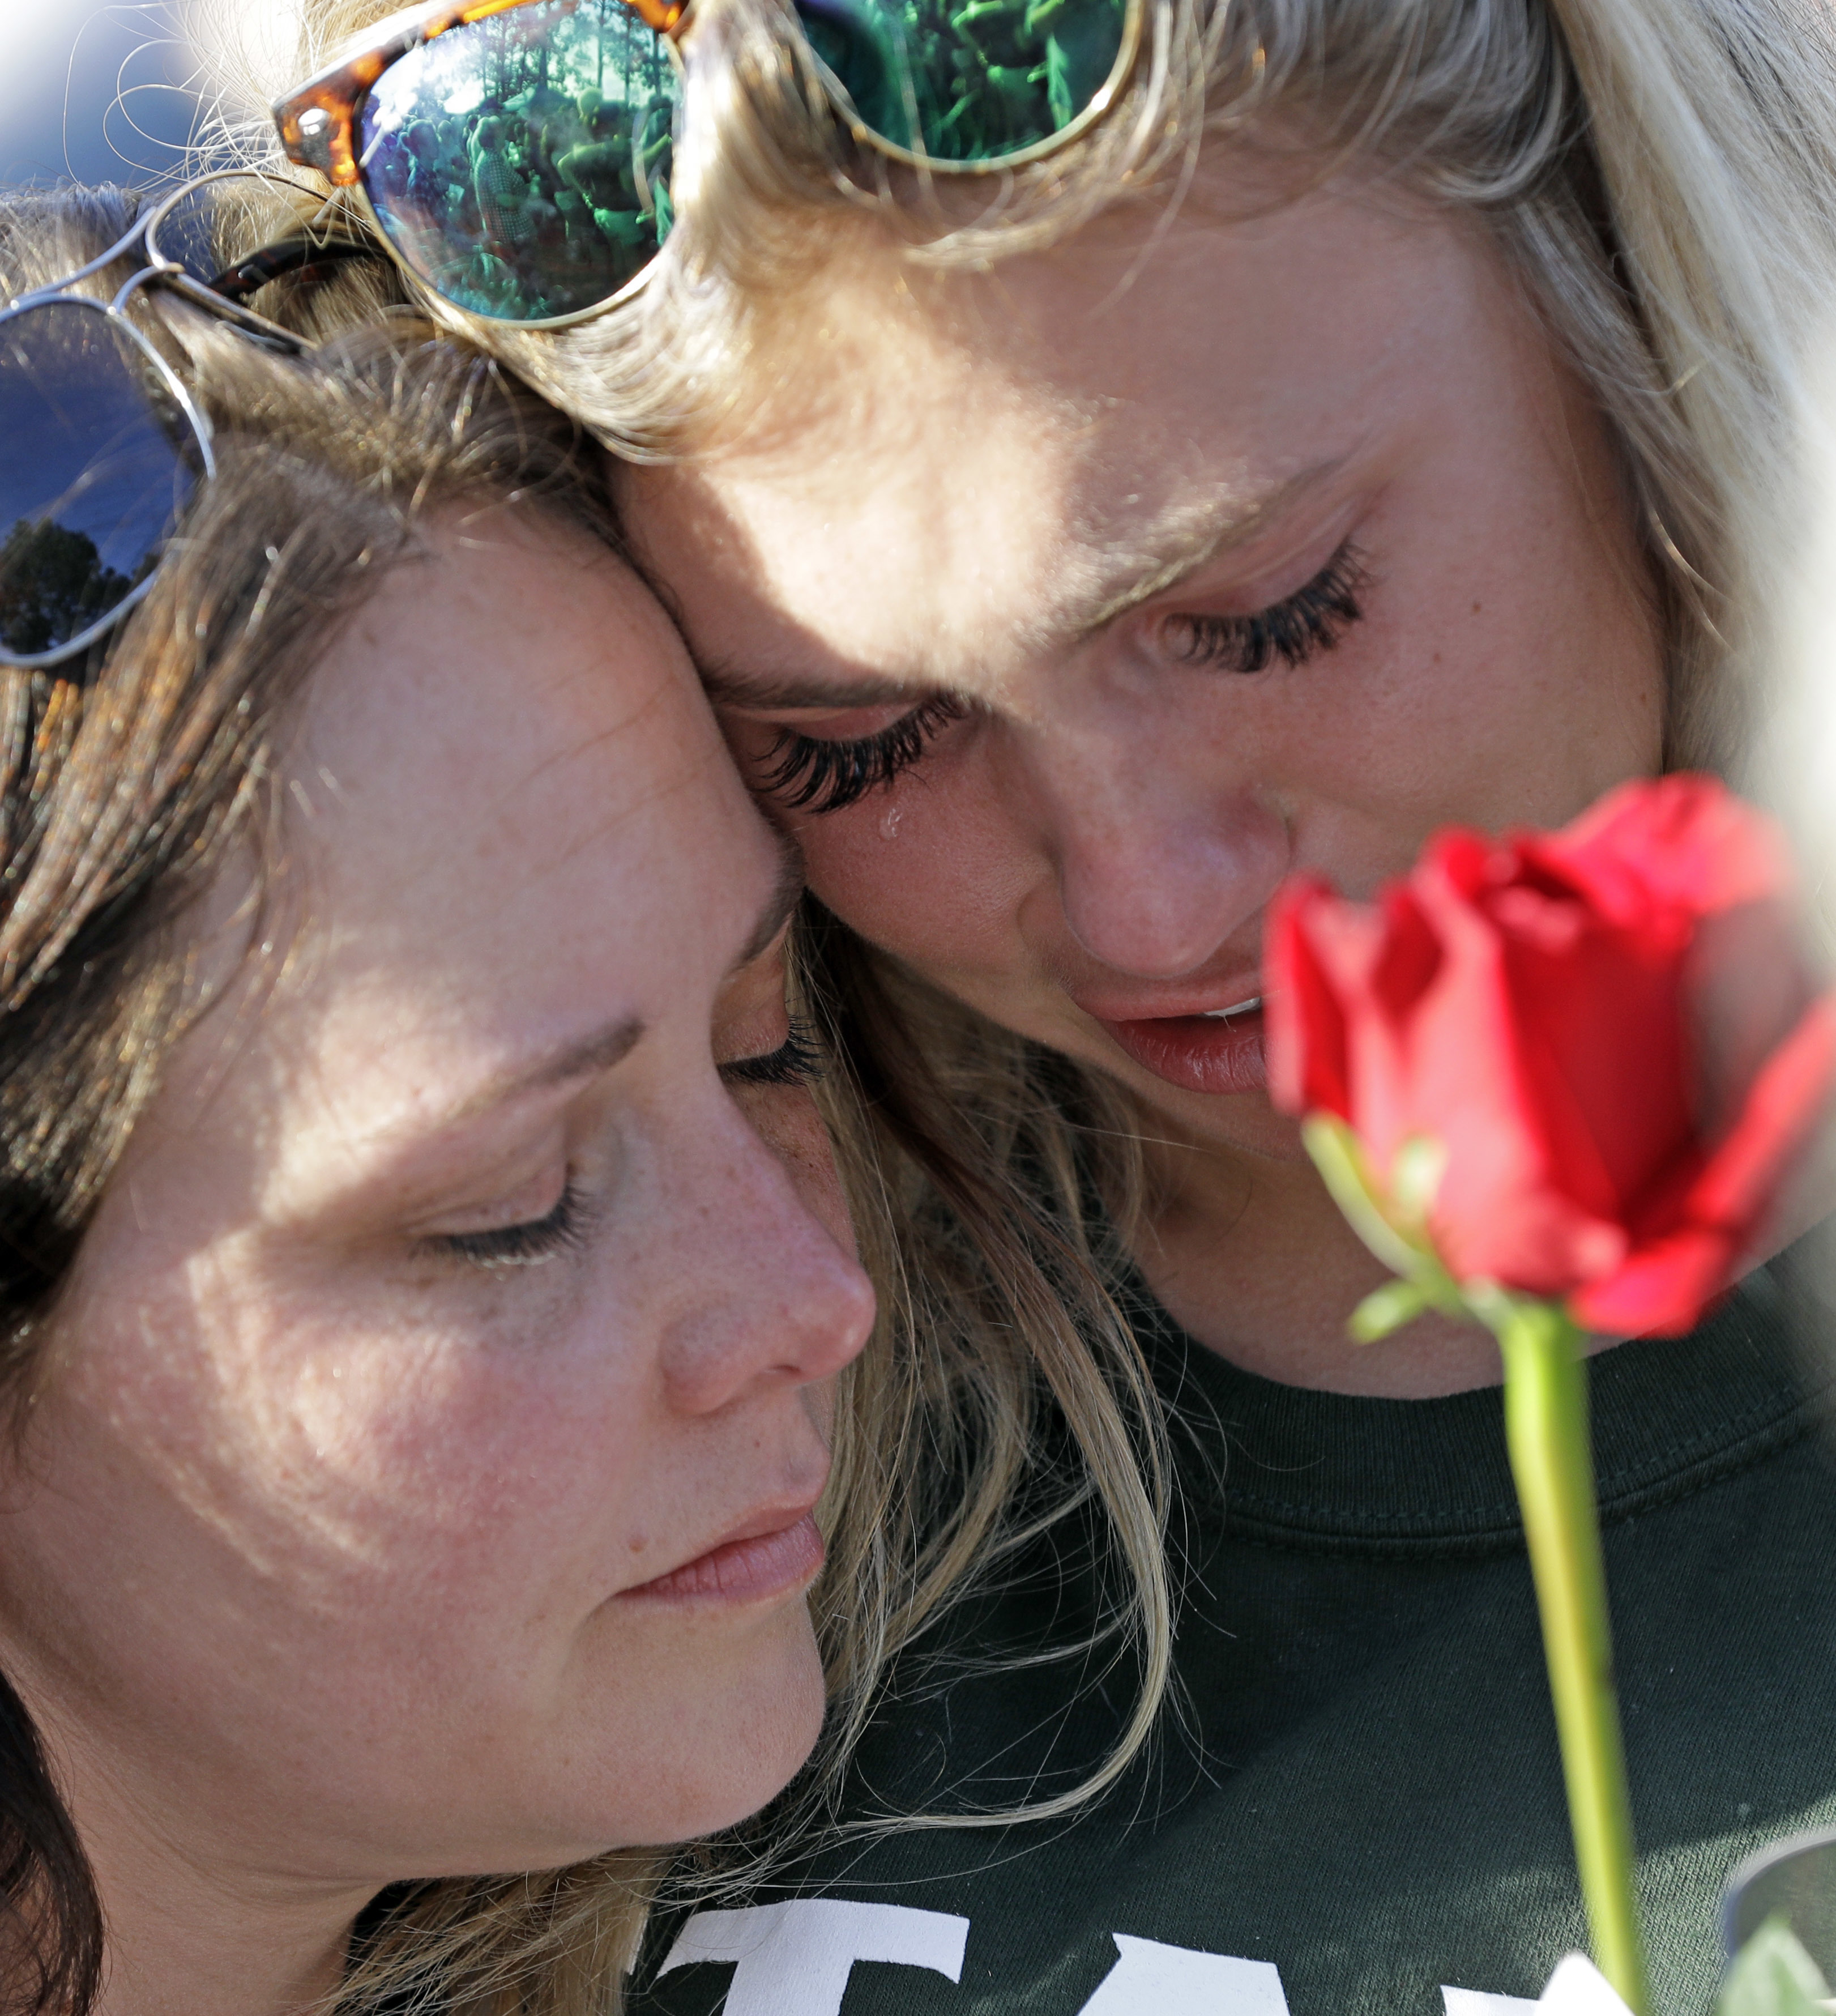 <div class='meta'><div class='origin-logo' data-origin='AP'></div><span class='caption-text' data-credit='AP'>Amy Nichols, left, comforts Santa Fe High School junior Paige Keenan during a prayer vigil following a shooting at Santa Fe High School.  (AP Photo/David J. Phillip)</span></div>